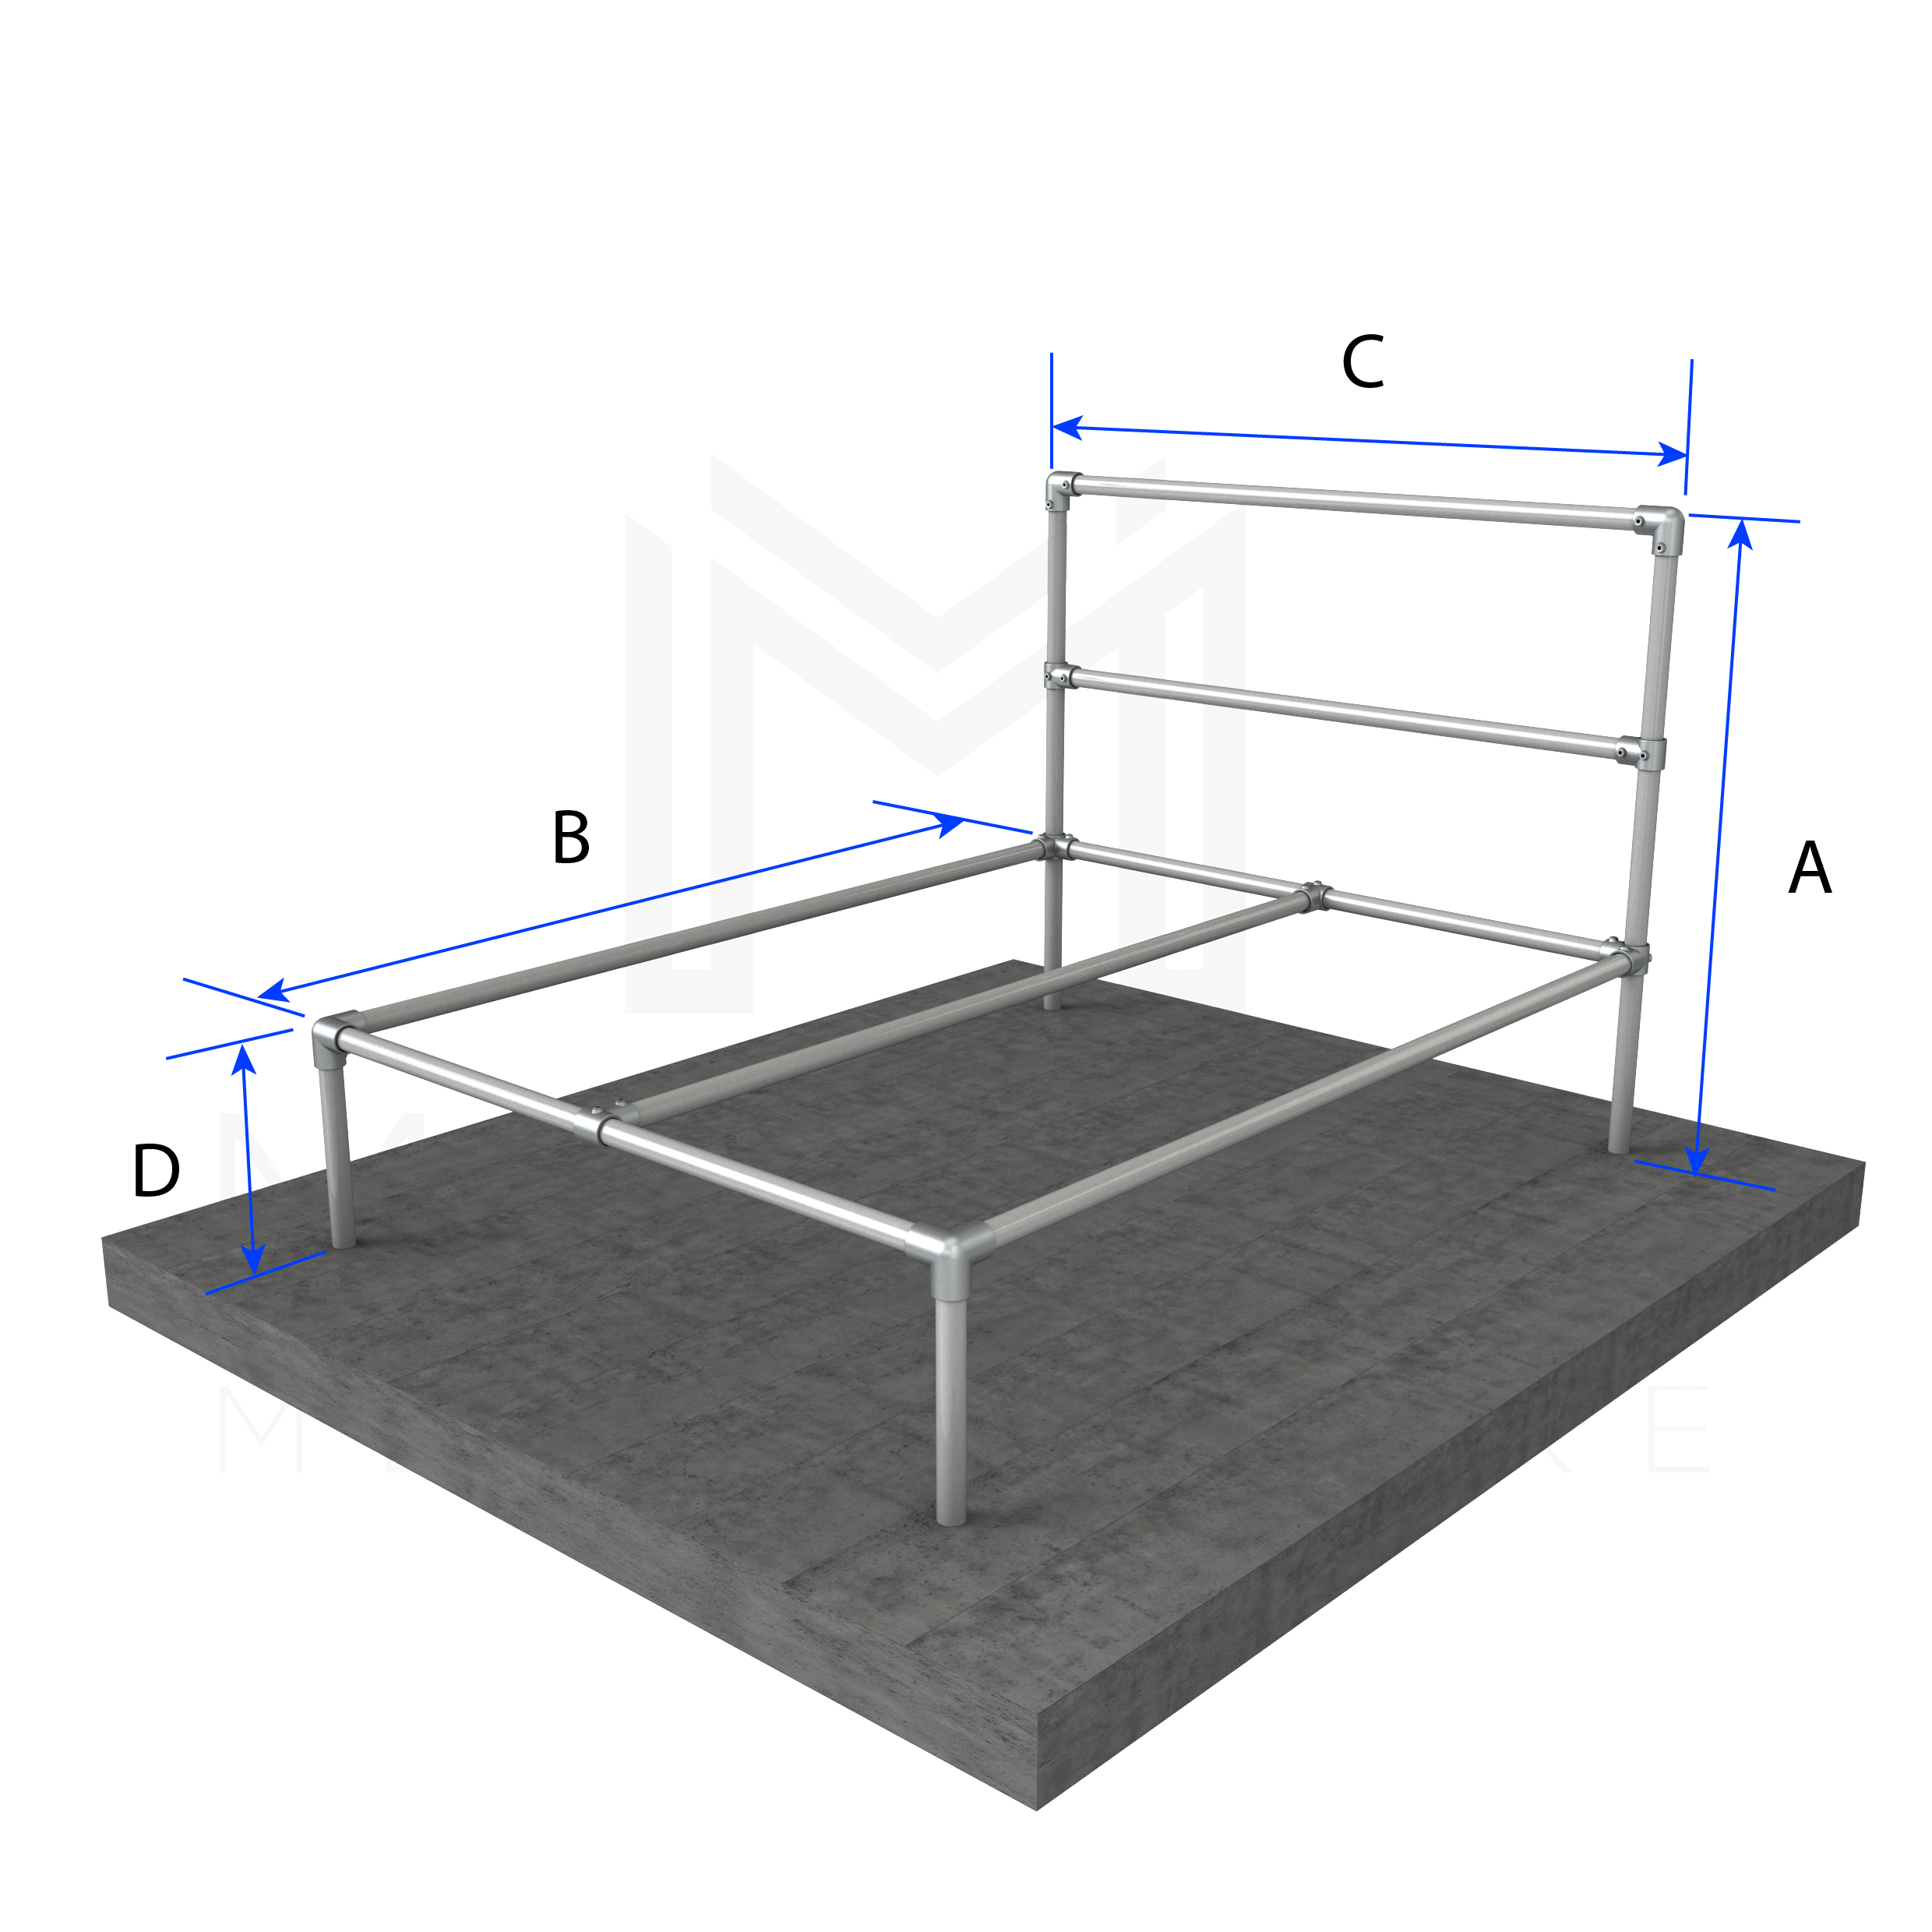 cool queen with on of metales bed furniture size full marvellous chart archived platform frame metal canopy lovely magnificent fulle dimensions